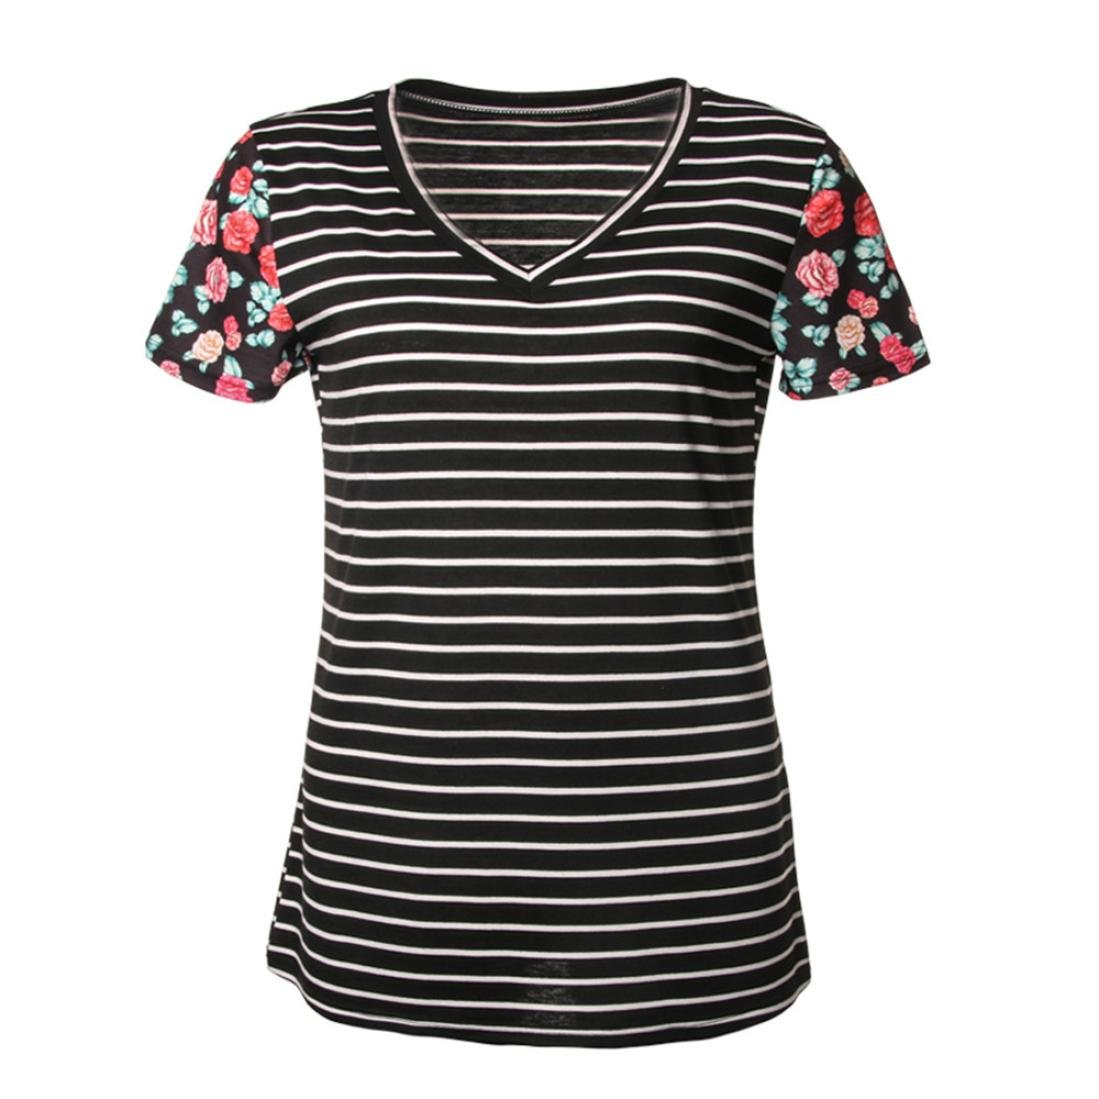 Amazon.com: FORUU womens Tops & Tees T Shirts for Womens, FORUU Casual Stitching Striped Short Sleeve V Neck Blouses: Clothing